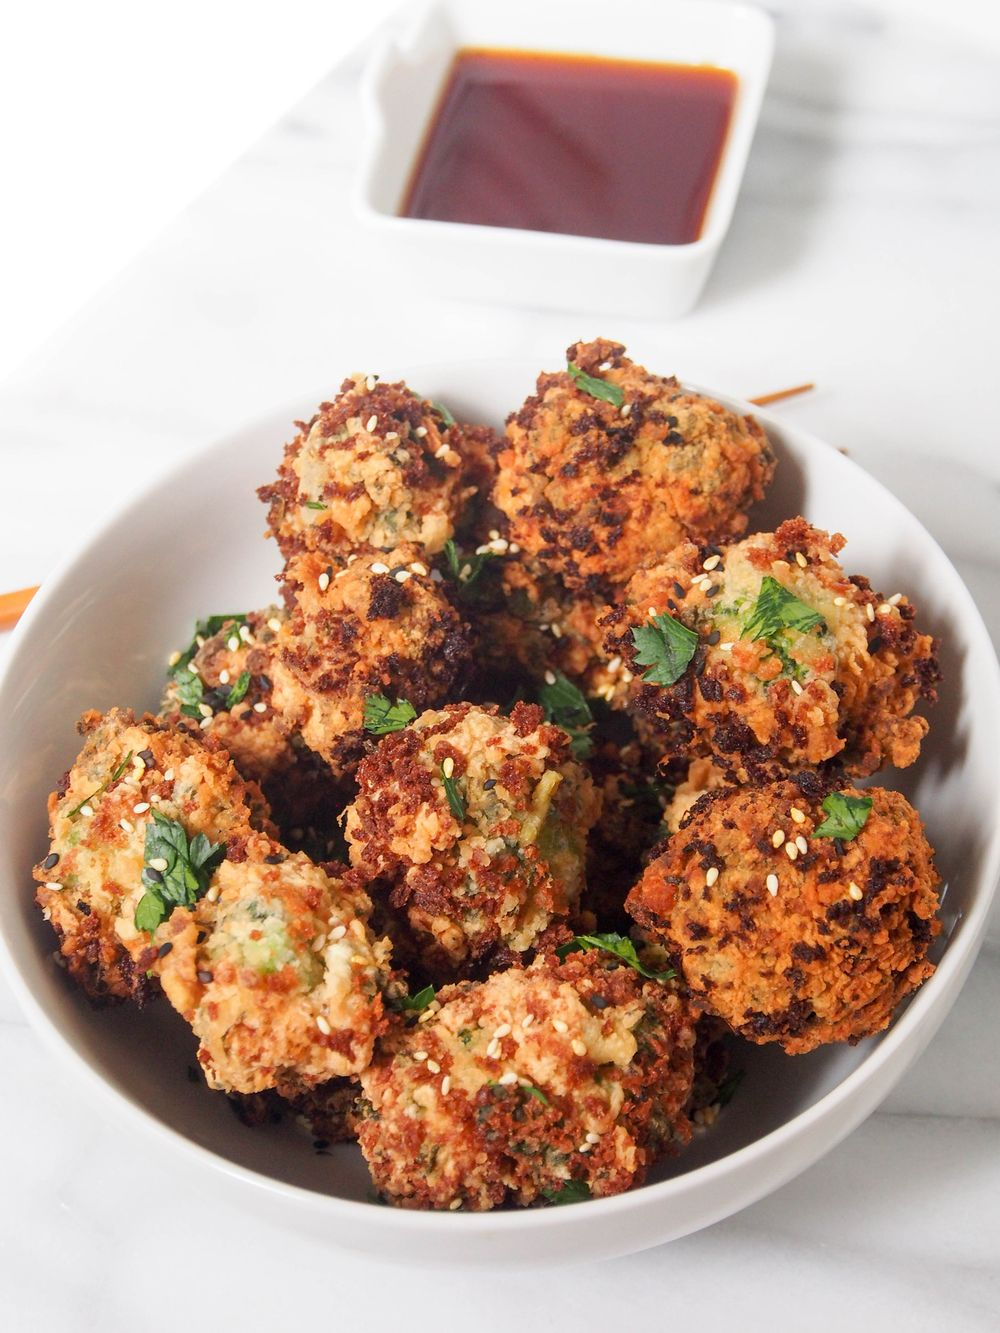 Korean Fusion: Fried Sesame Broccoli Bites with Ponzu Sauce | All Content Created By © Suzanne Spiegoski